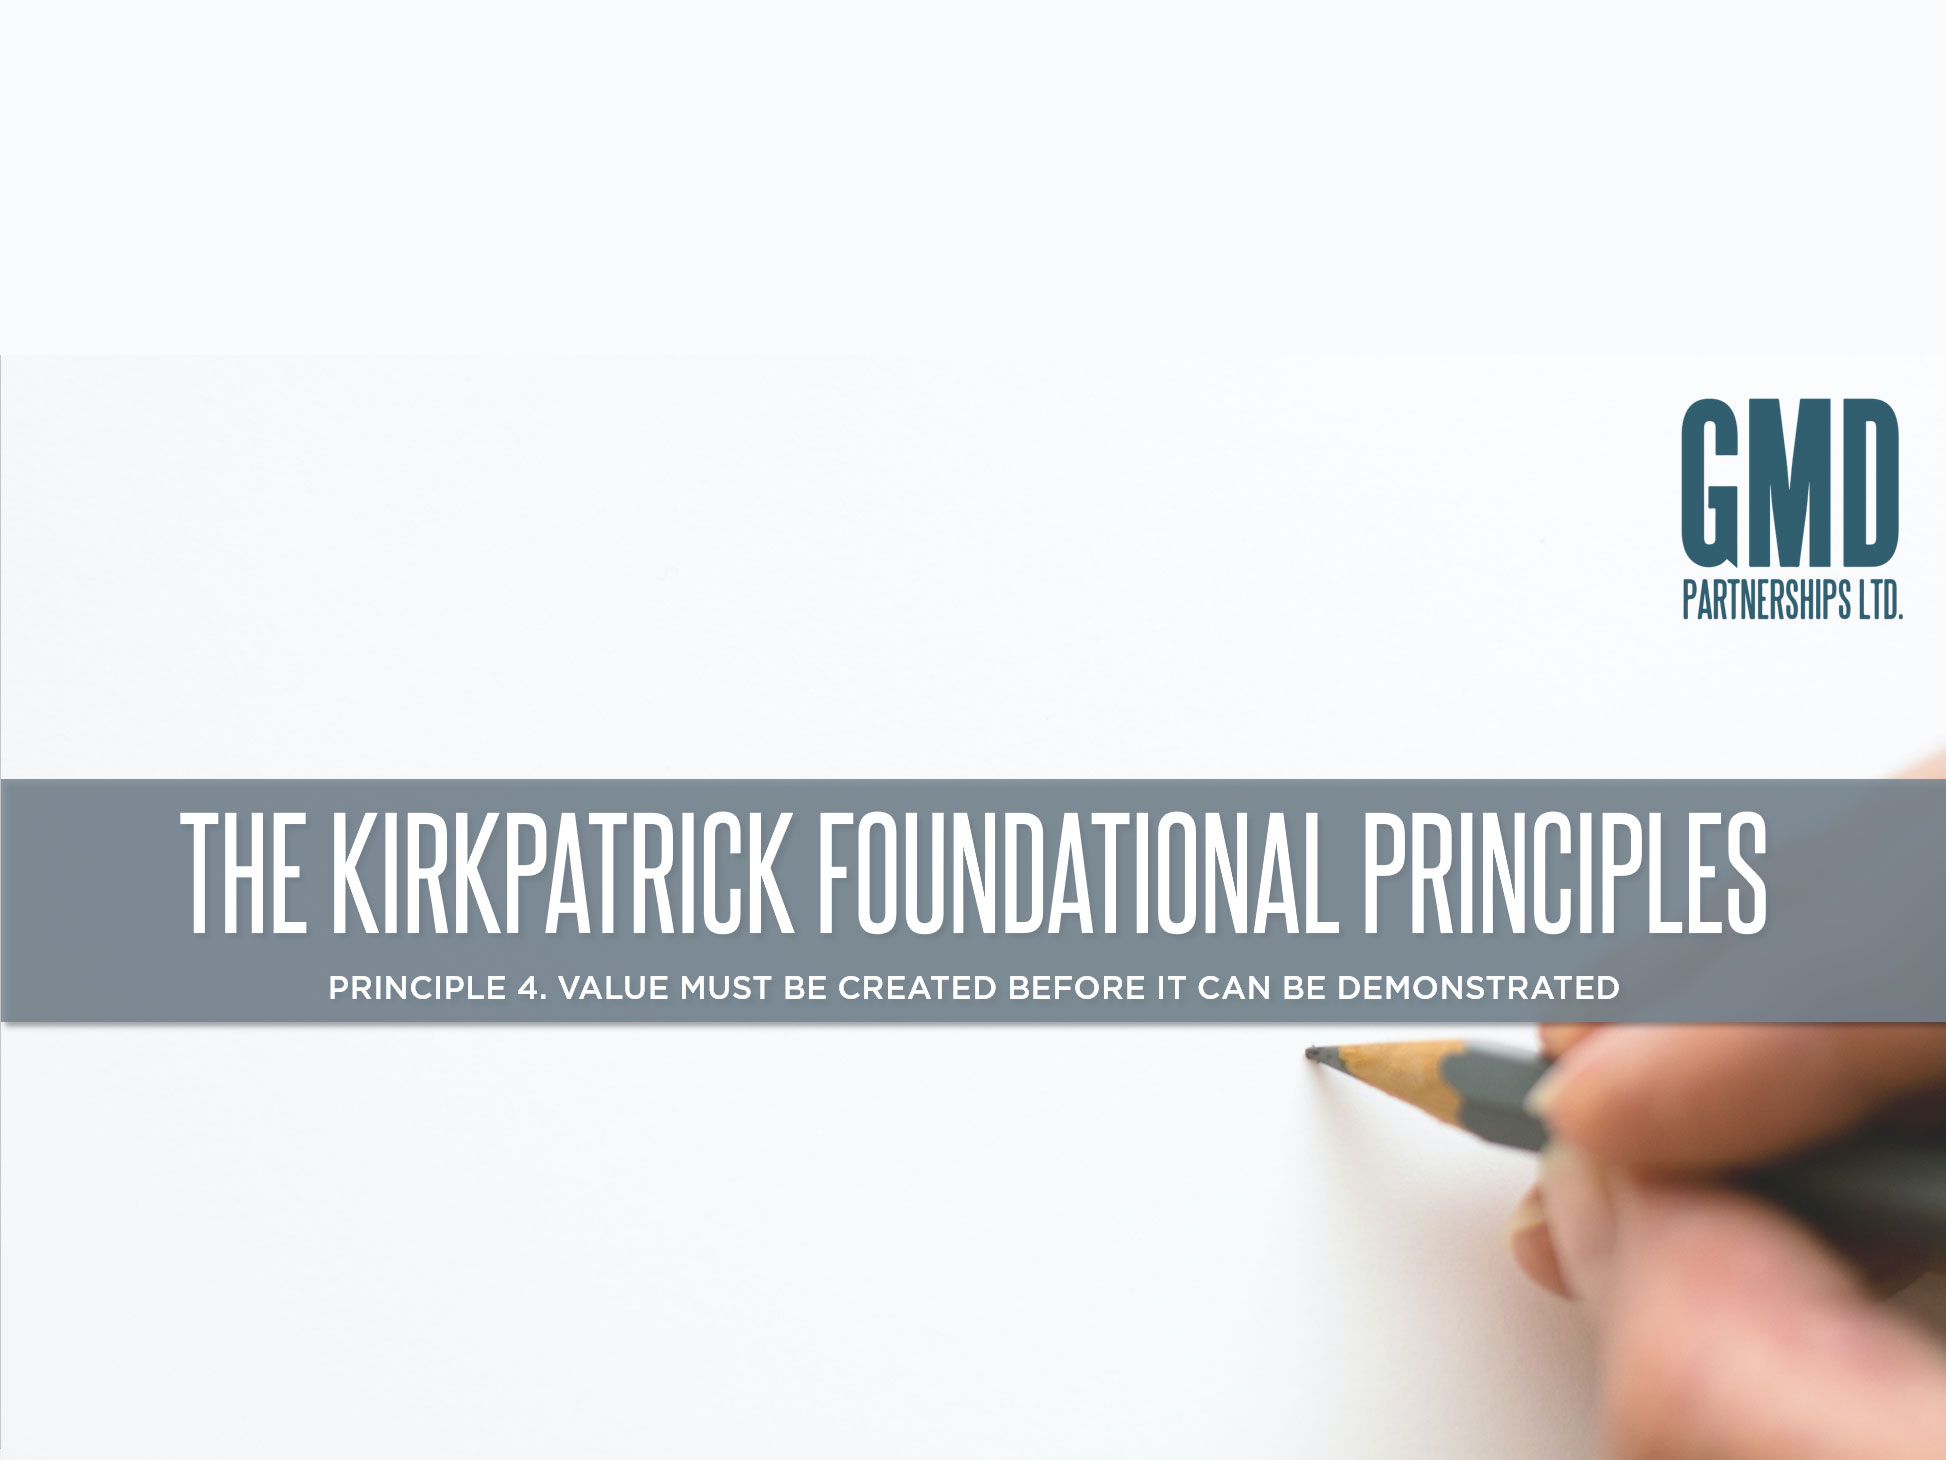 Kirkpatrick Principle 4. Value must be created before it can be demonstrated